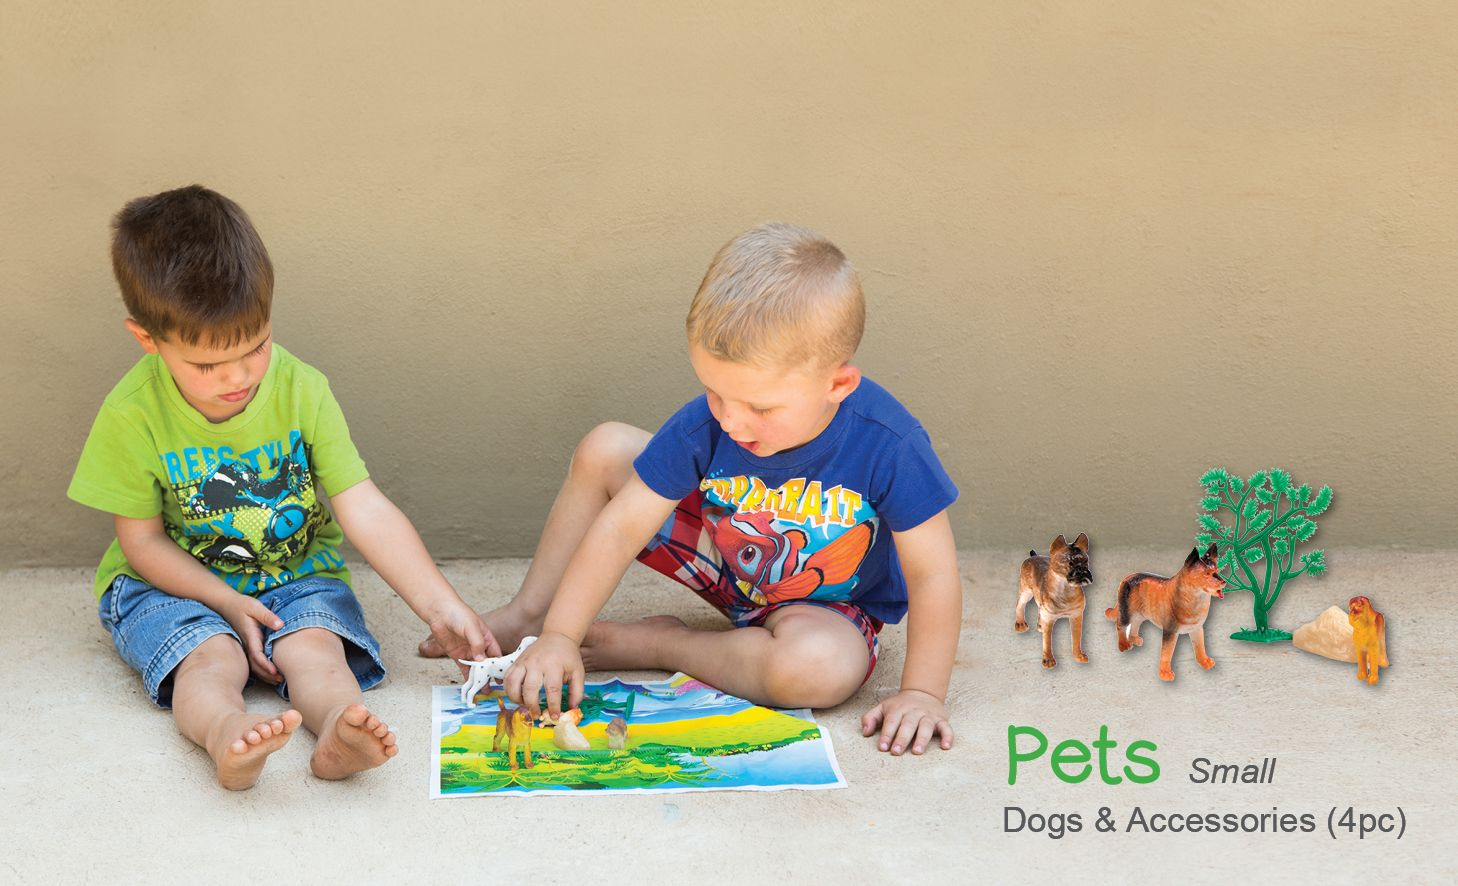 Let Your Children Play For Hours With The Fascinating Set Of Pets